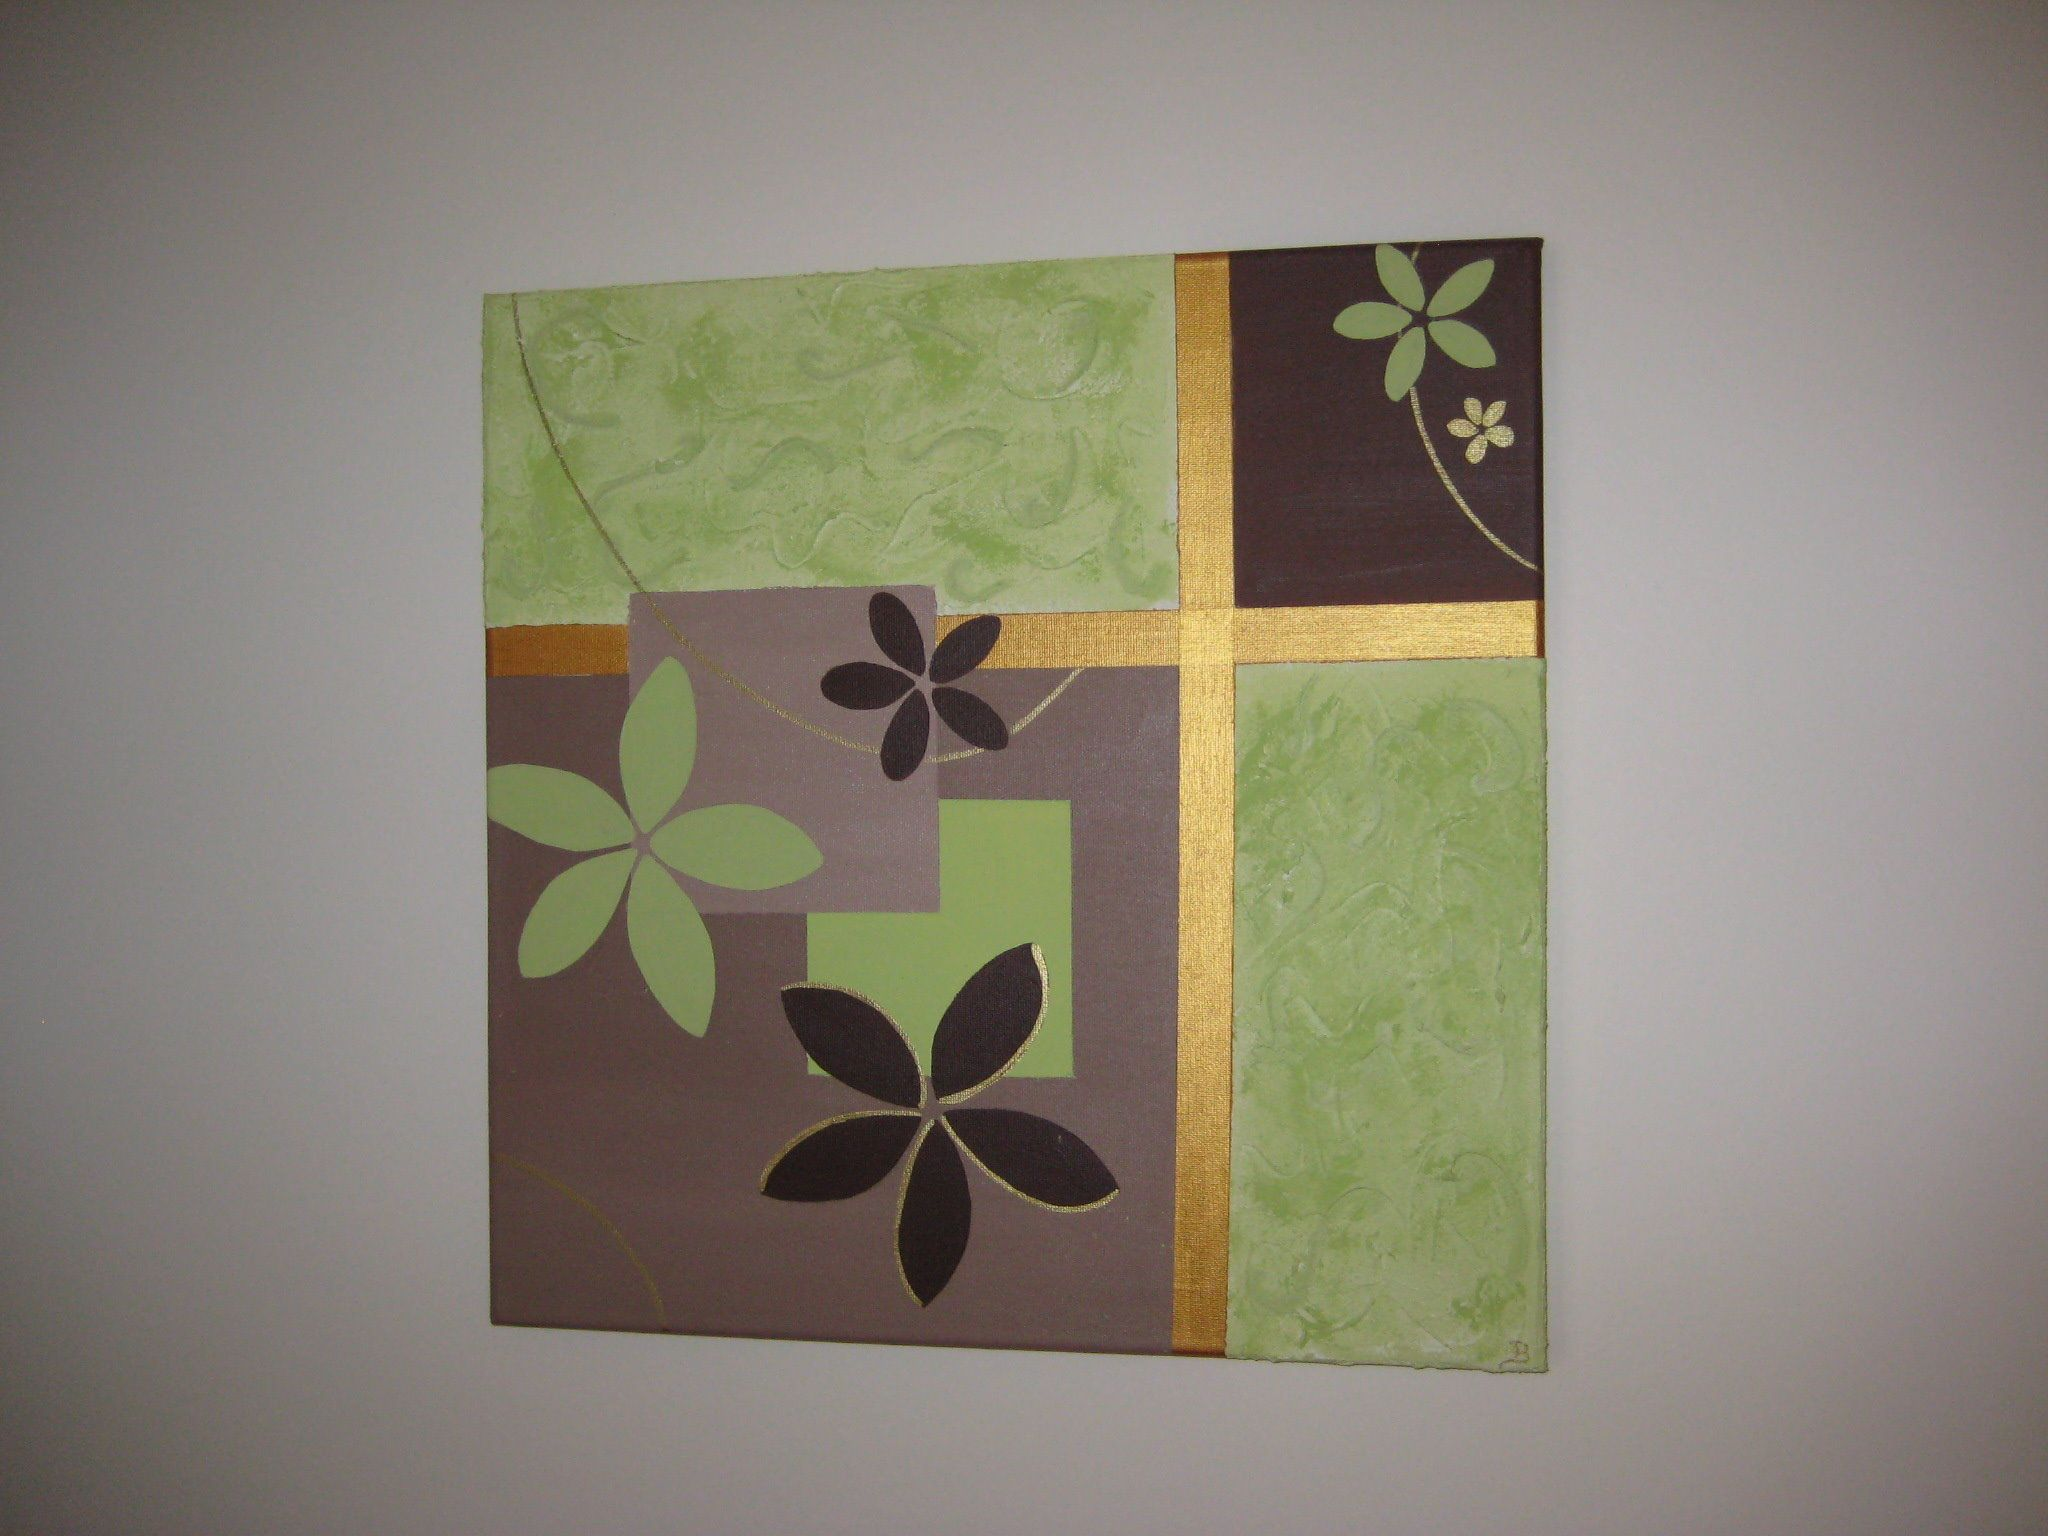 Diy canvas painting ideas homemade art canvas diy wall for Homemade diy